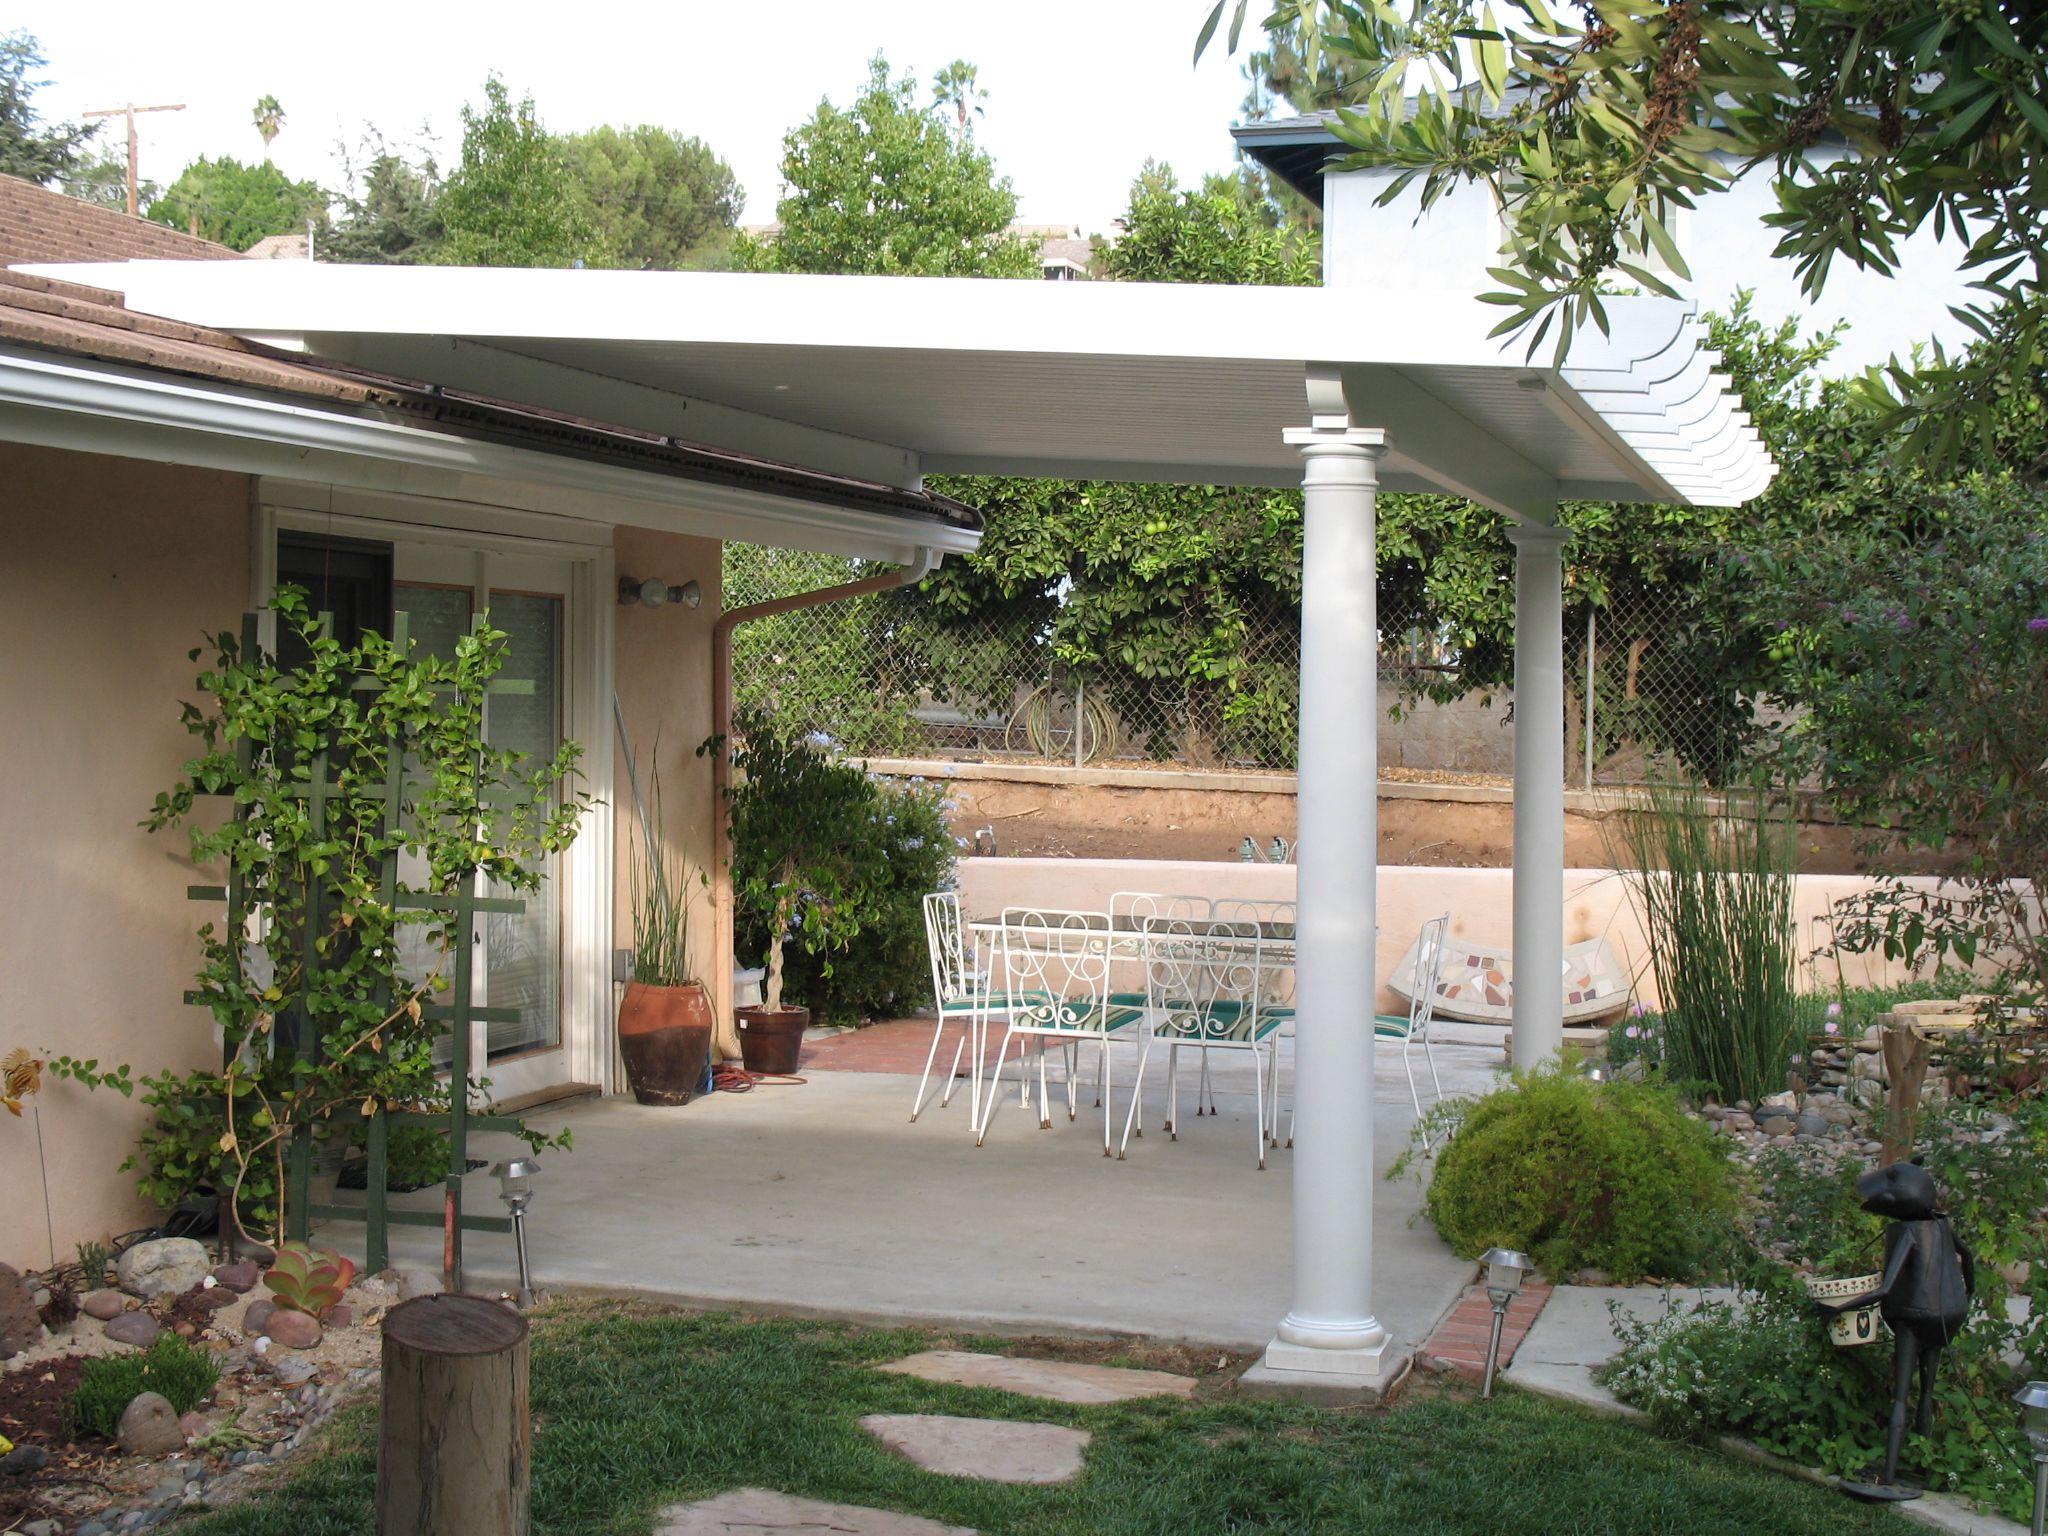 Roof Design Ideas: Marvelous White Round Column With White Wooden Sloping